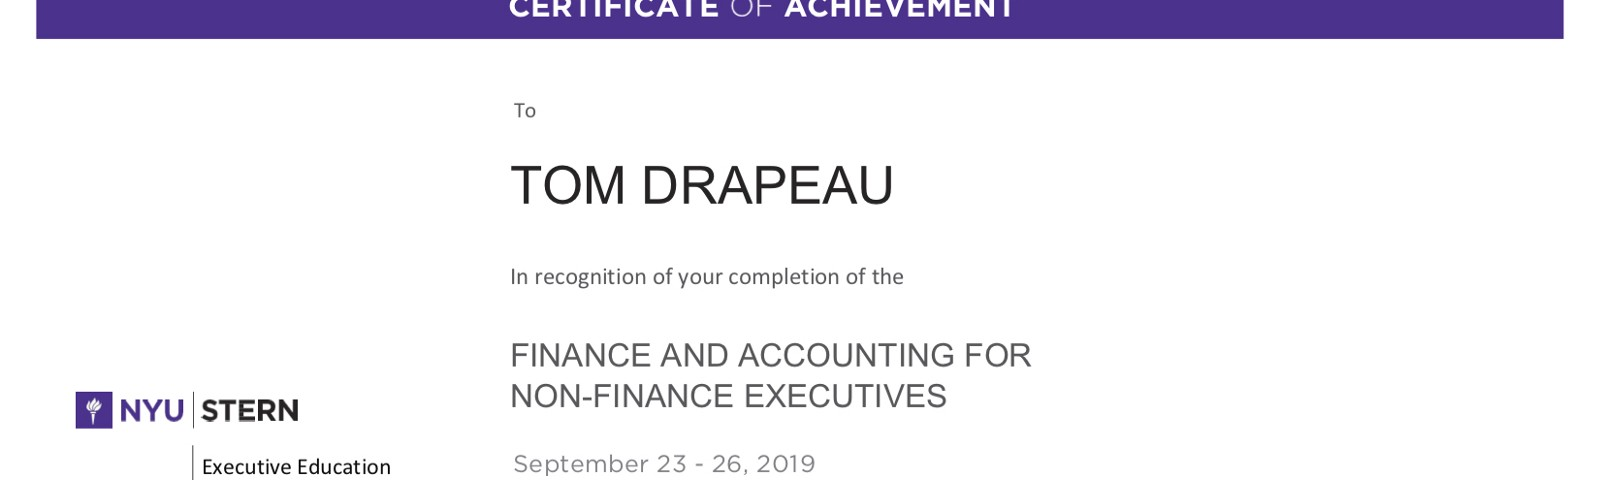 My completion certificate from the NYU Stern short course in Finance and Accounting.